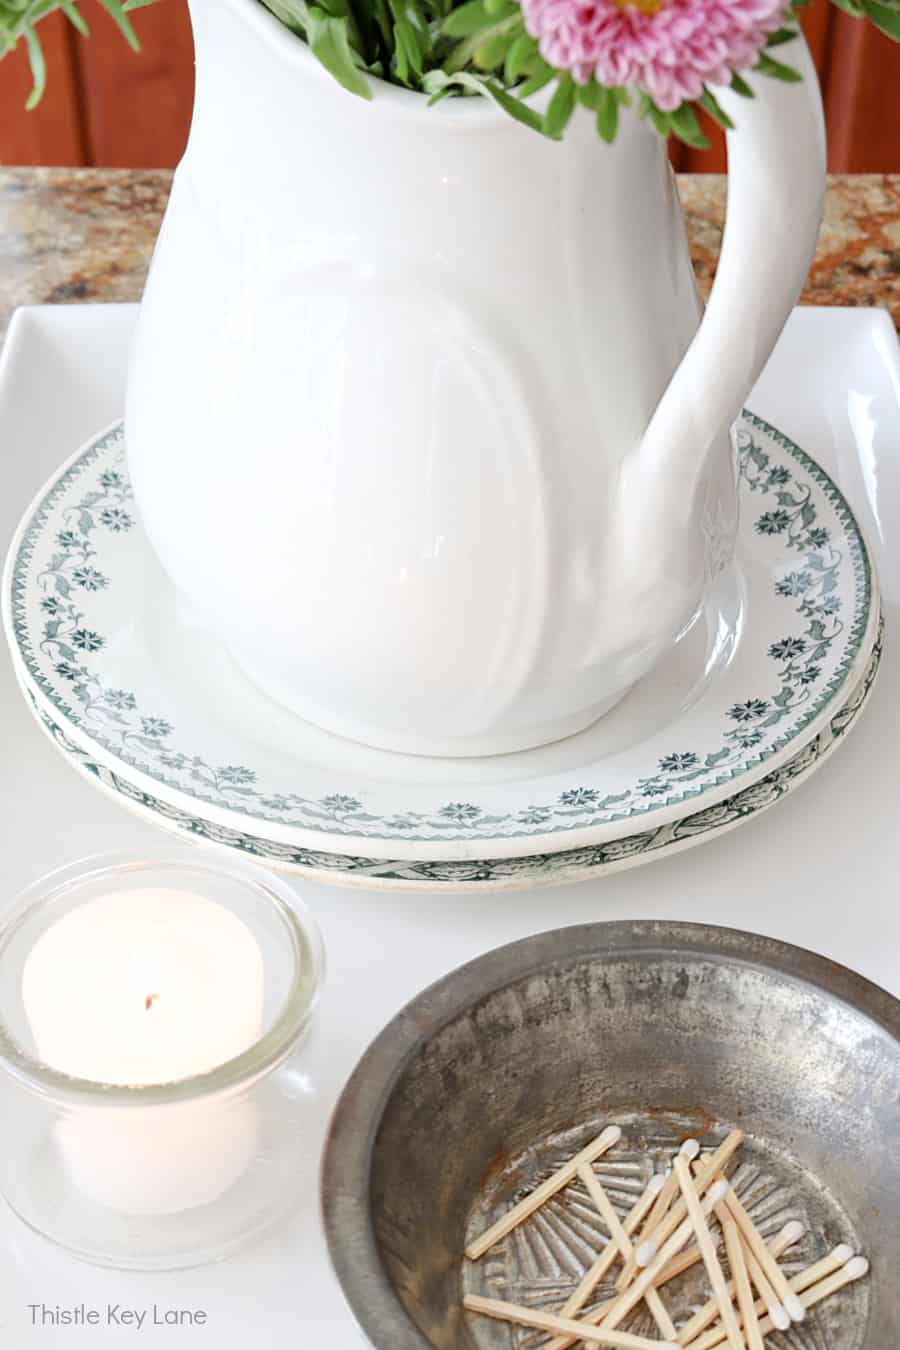 Blue and white plates, ironstone pitcher, candle, tin holding matches - Using Trays To Control Kitchen Clutter.